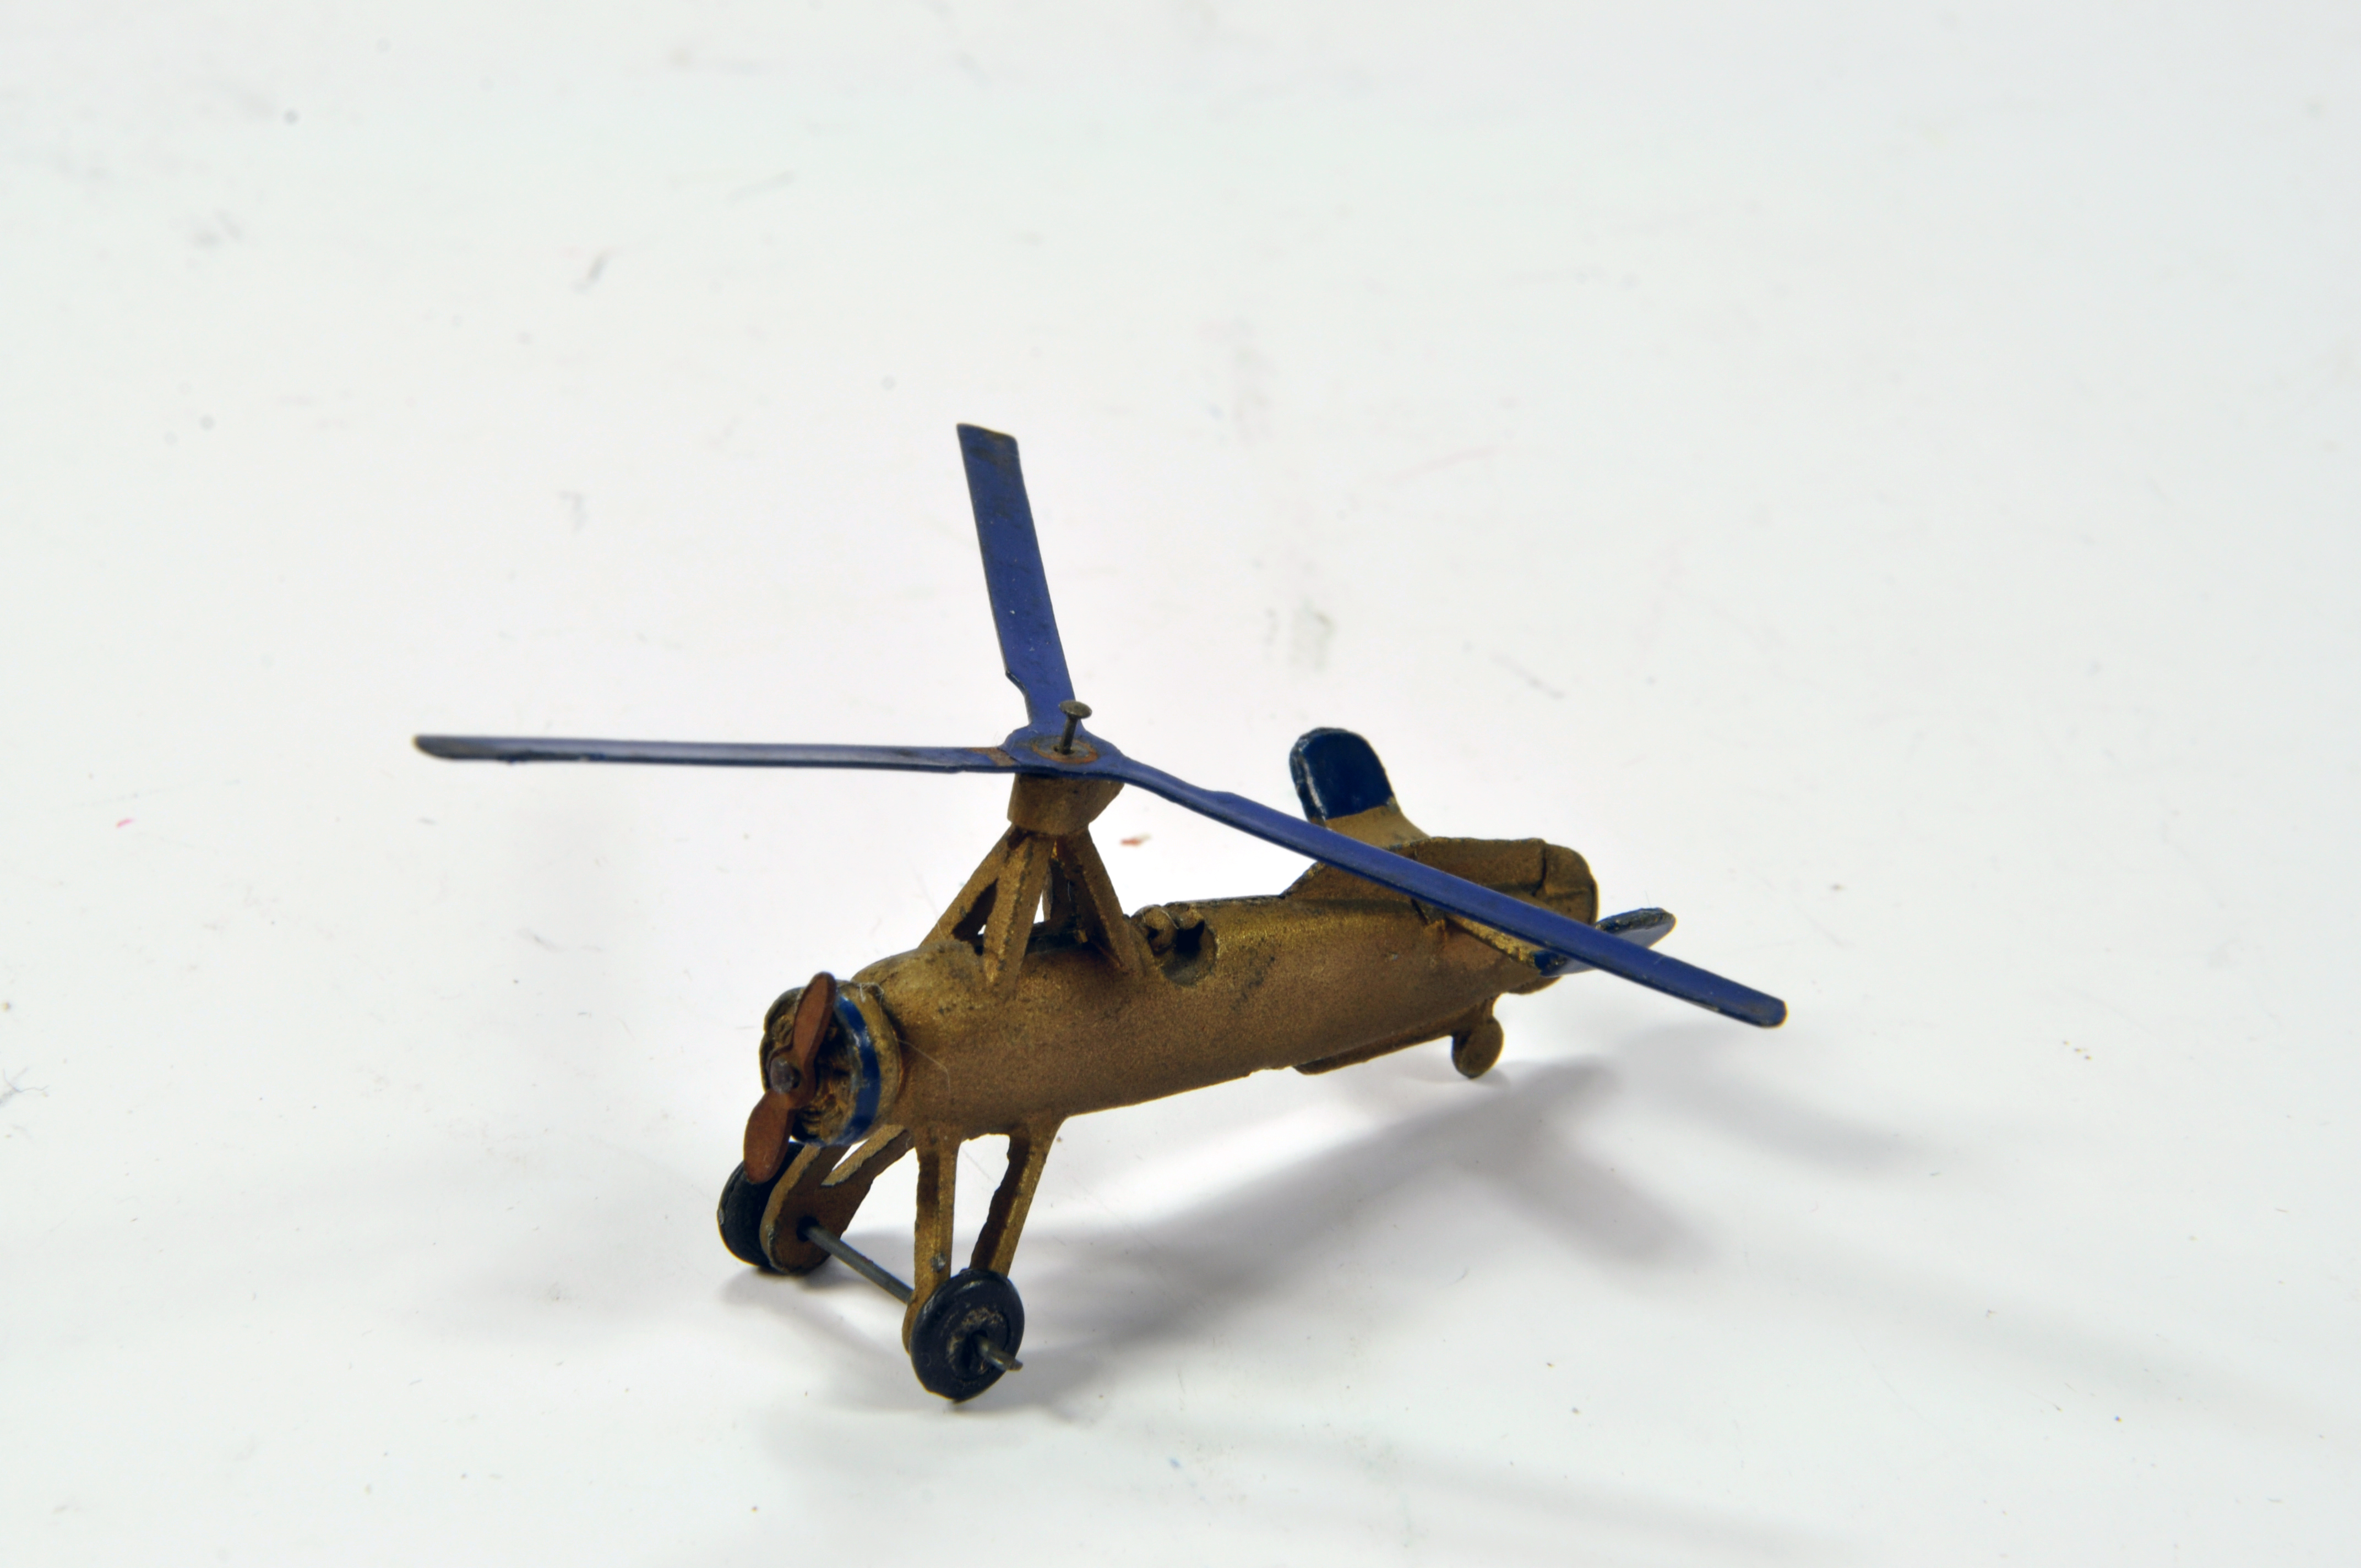 Lot 702 - Dinky No. 60f Pre-War Cierva Autogiro in gold with blue trim, blue rotor and steel twin blade